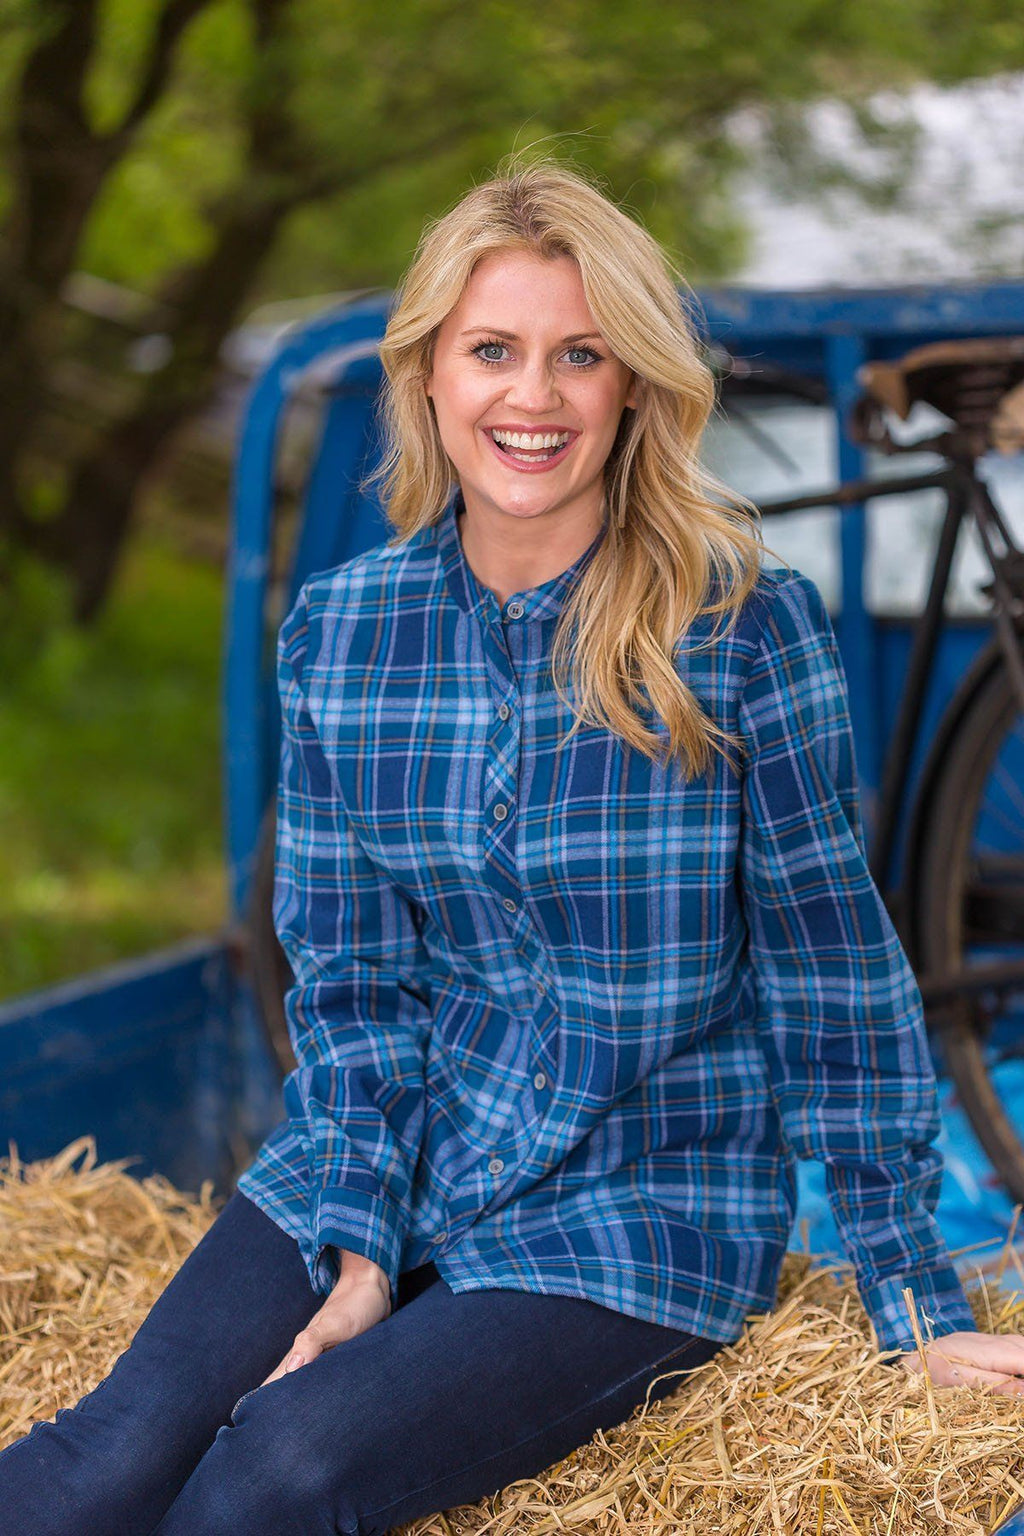 Grandfather Shirt Ladies Flannel Blue Check- (LV8) - Lee Valley Ireland - 1